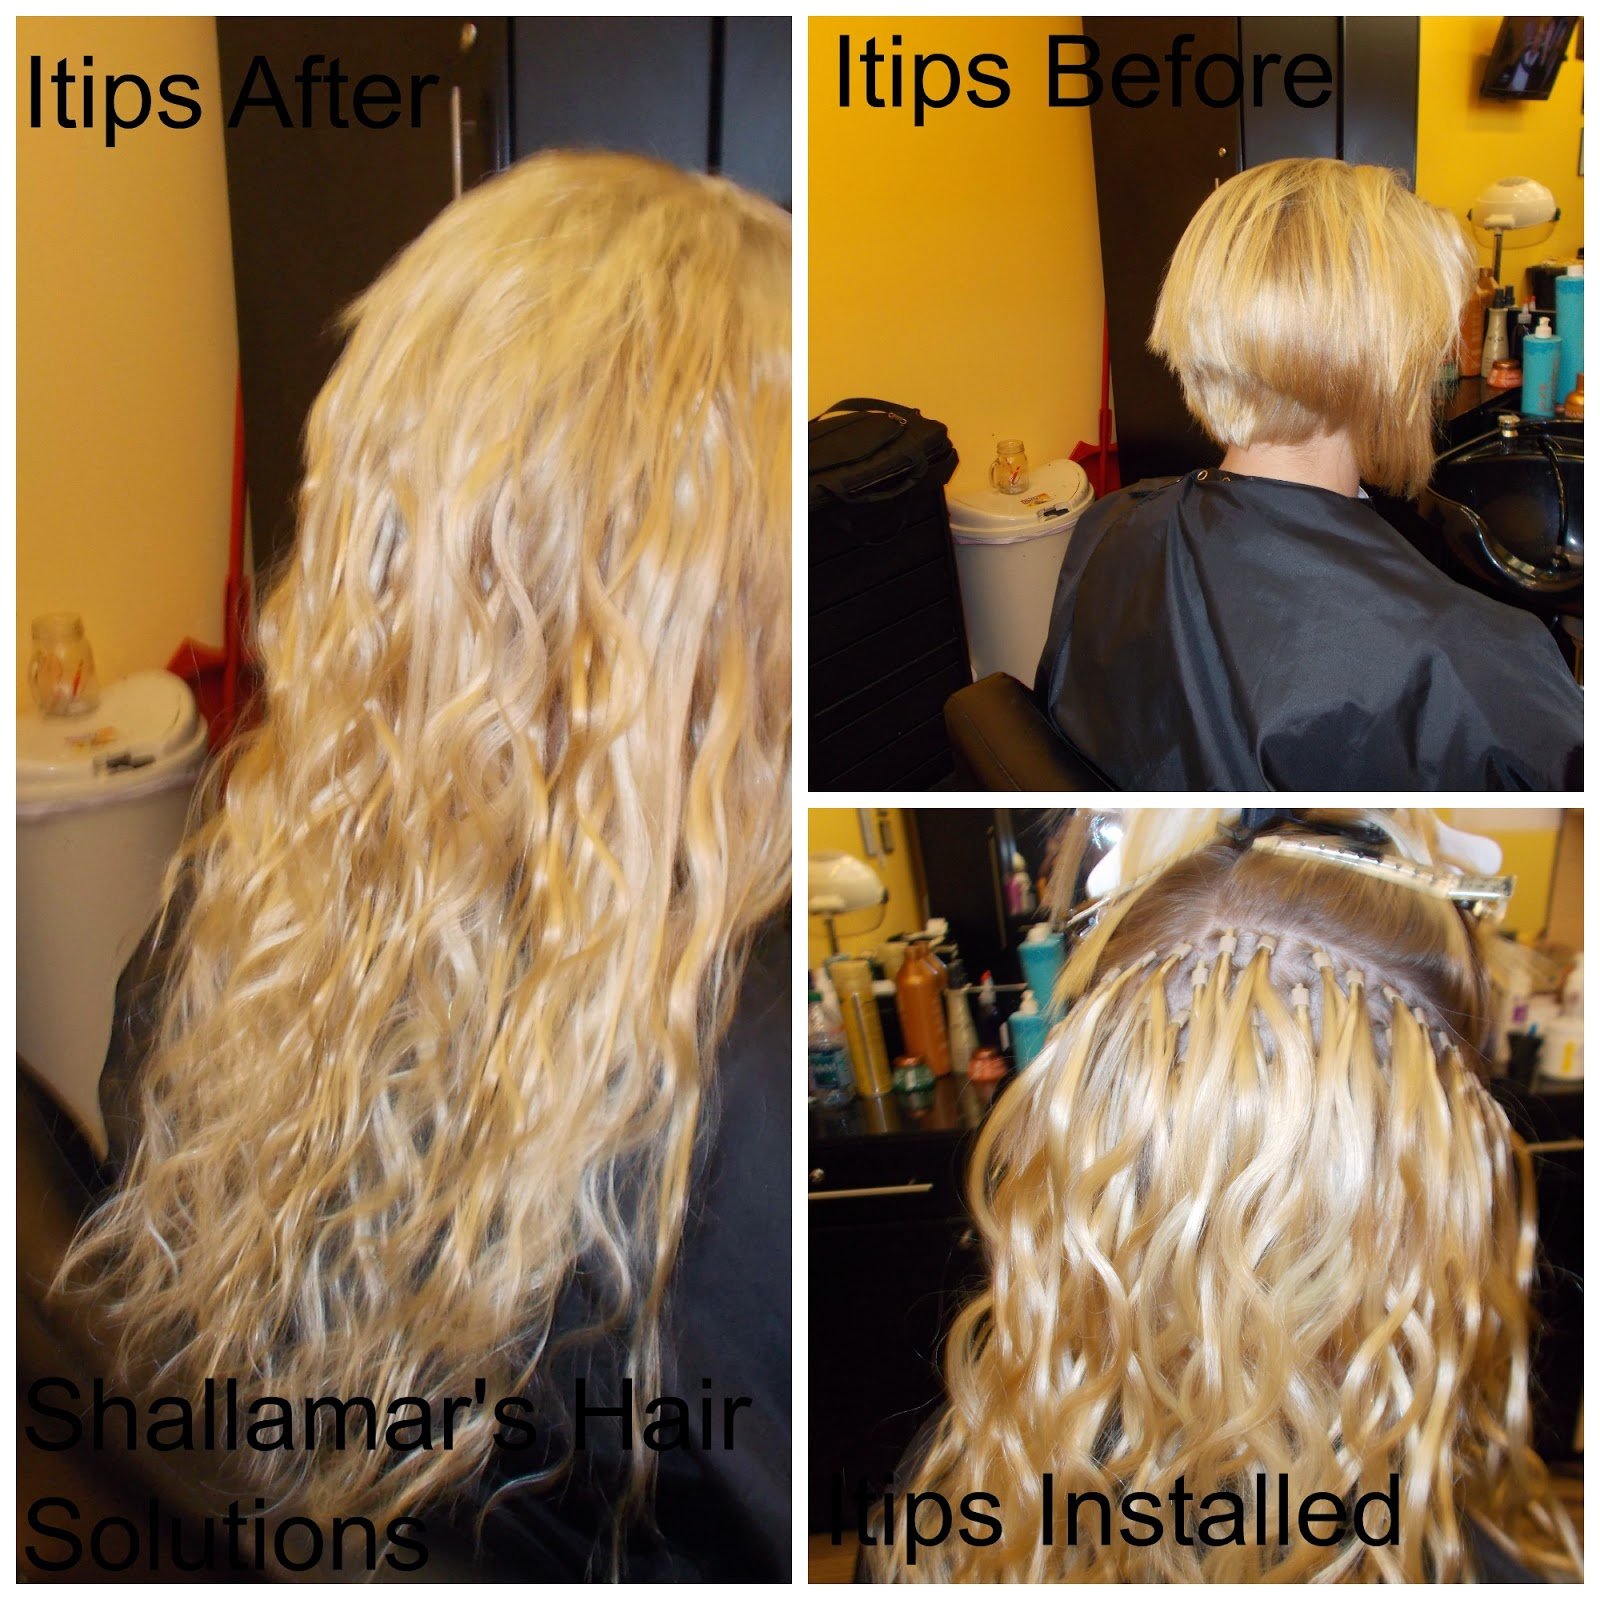 Hair replacement orlando orlando utips hair extensions vs i orlando utips hair extensions vs i tips hair extensions pmusecretfo Images